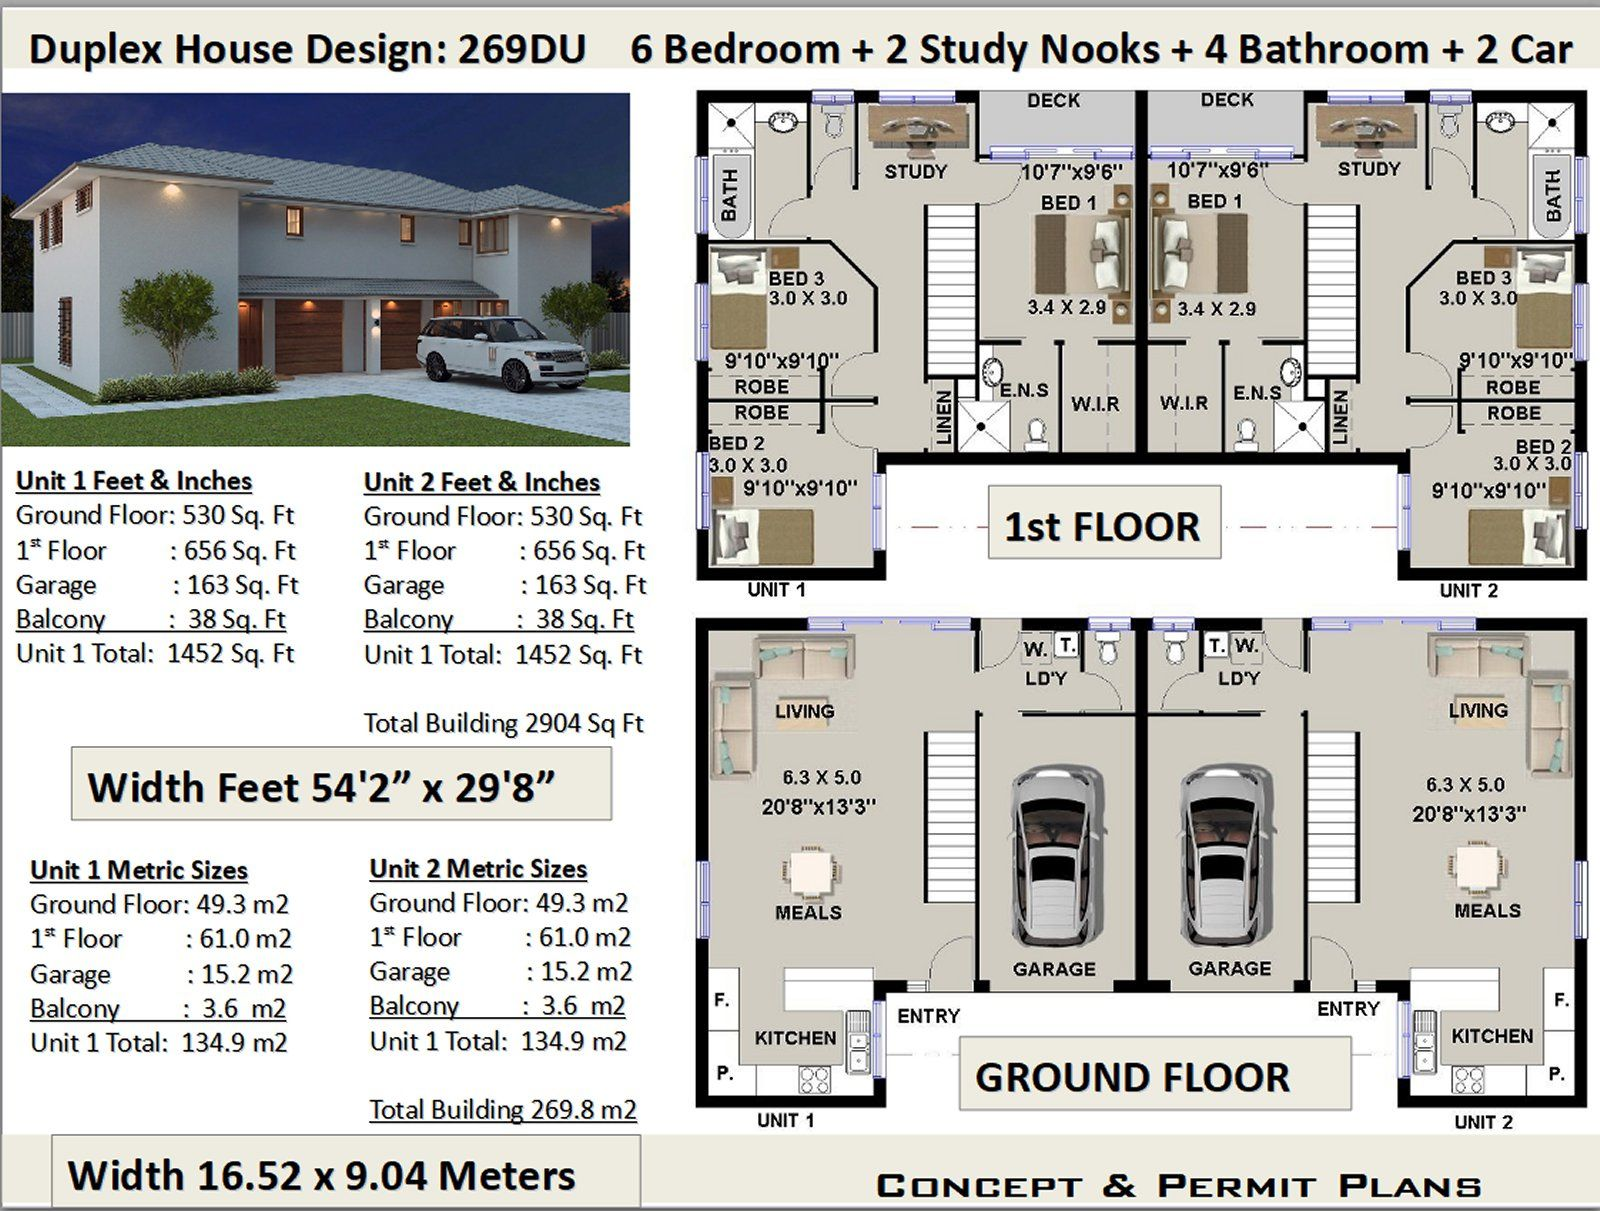 6 Bedroom Duplex Townhouse House Plans House Design 269du Duplex House Plans Duplex House House Plans For Sale